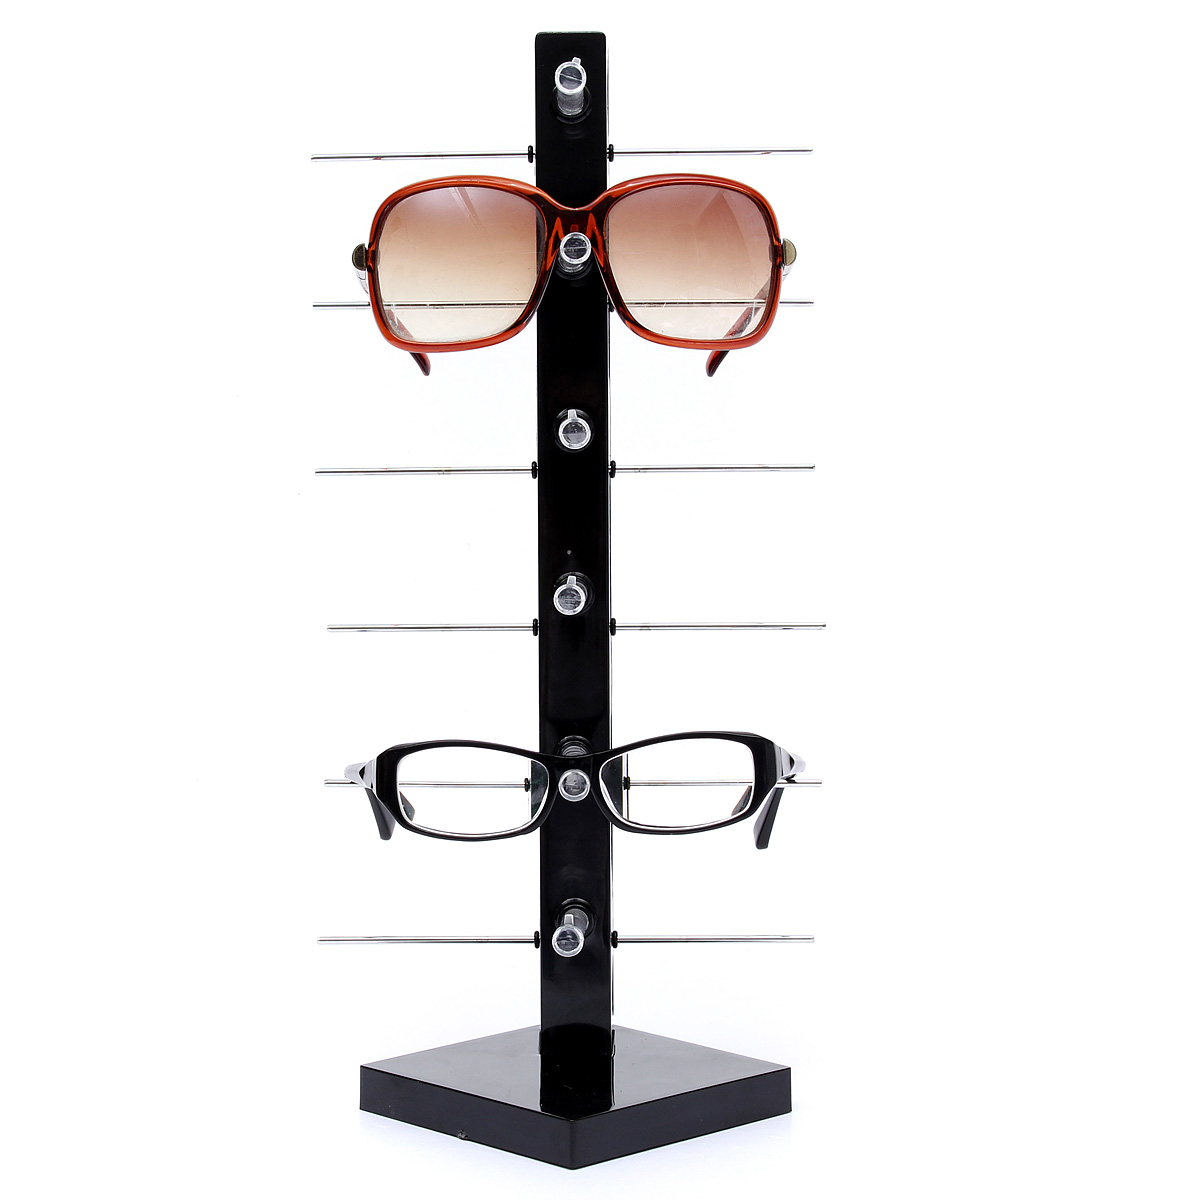 6 Pairs Eyeglasses Sunglasses Spectacles Glasses Frame ...